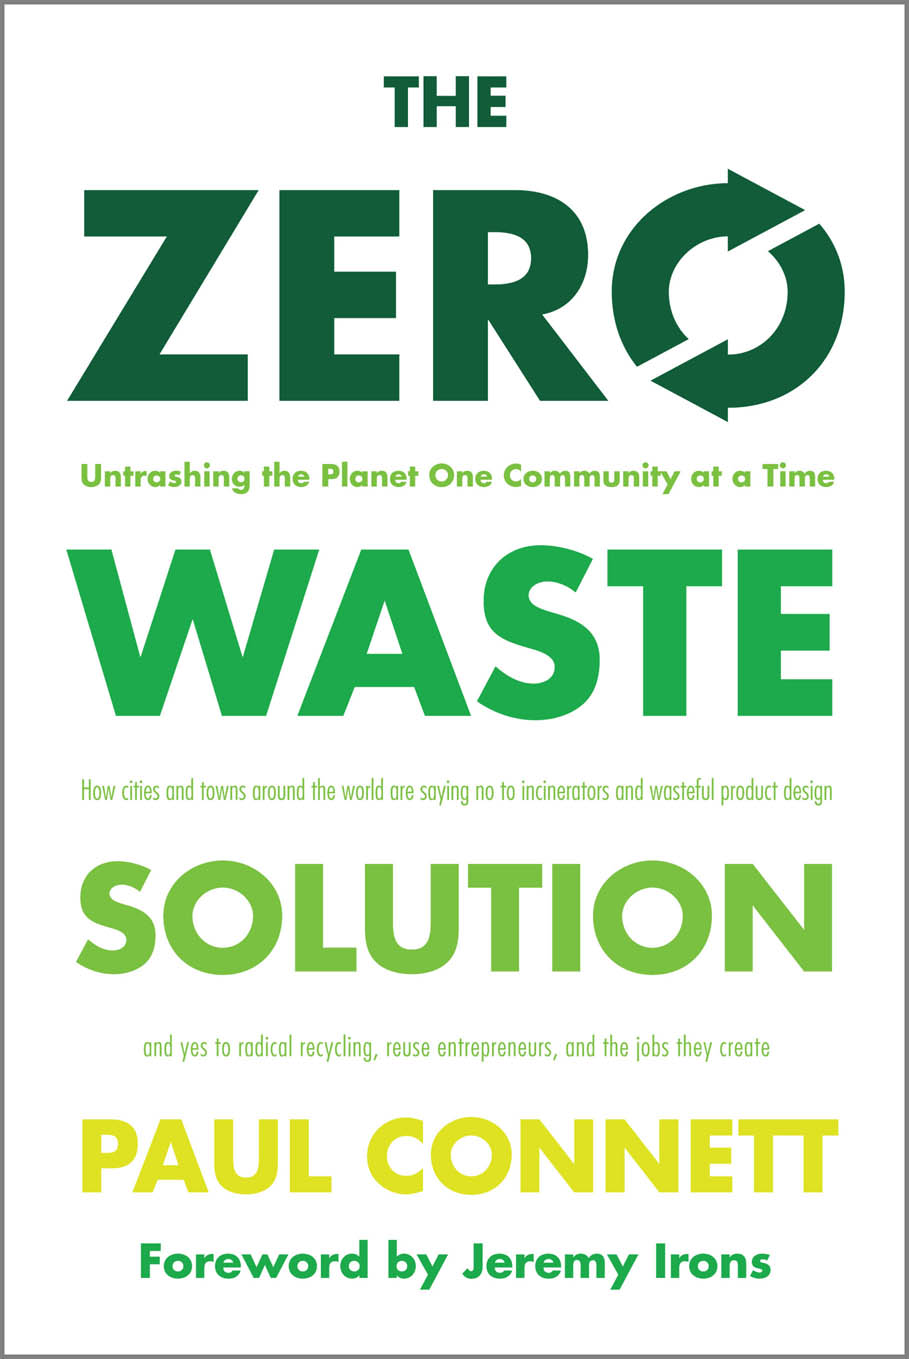 Zero waste how to untrash the planet chelsea green 500eco for Best out of waste environment